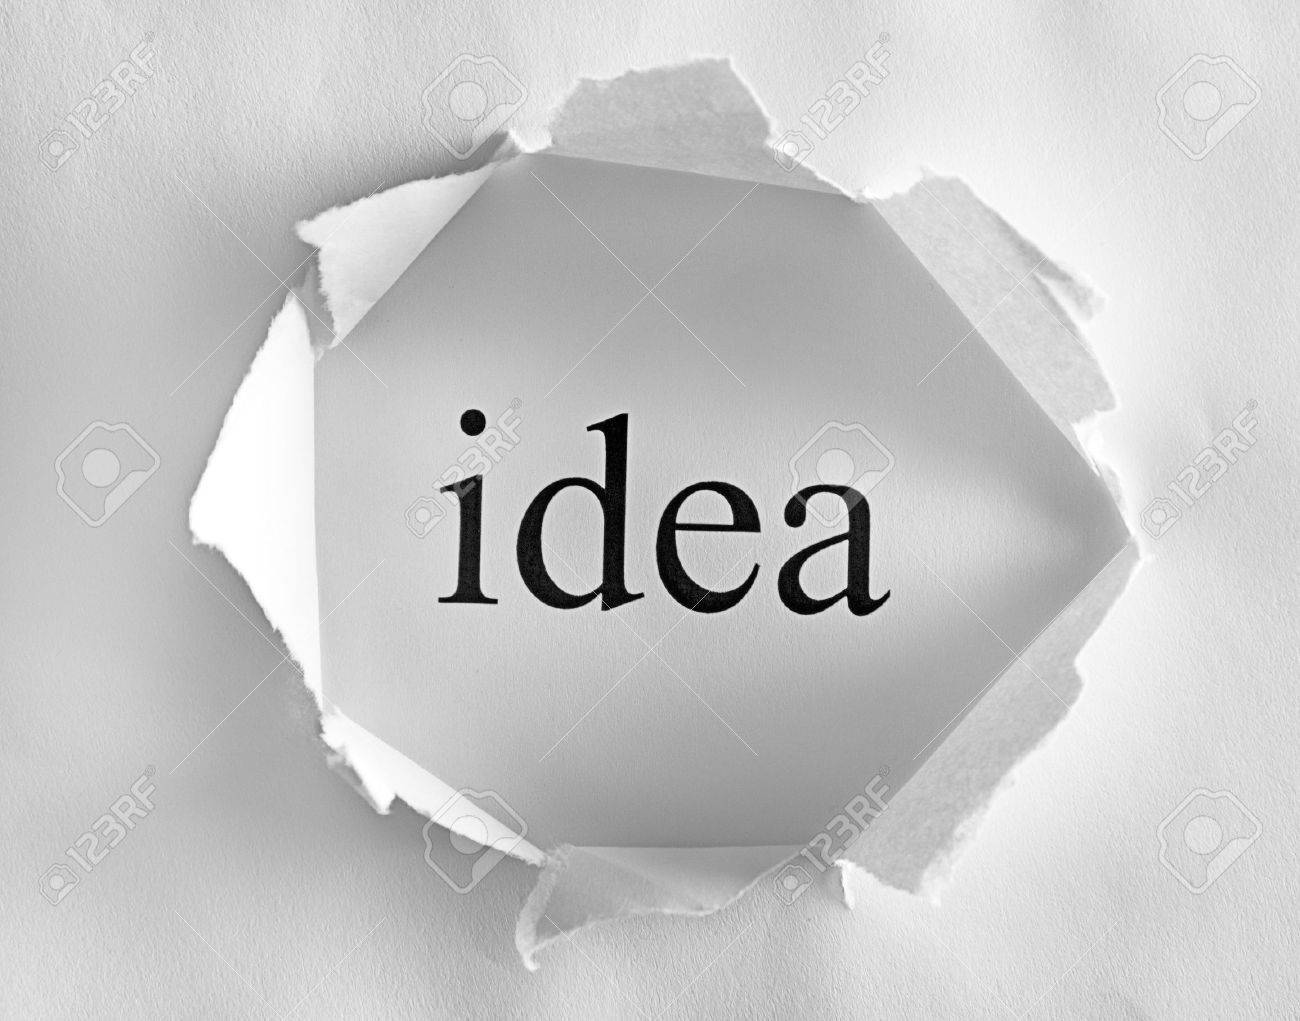 Idea on white background in a paper hole Stock Photo - 13023762